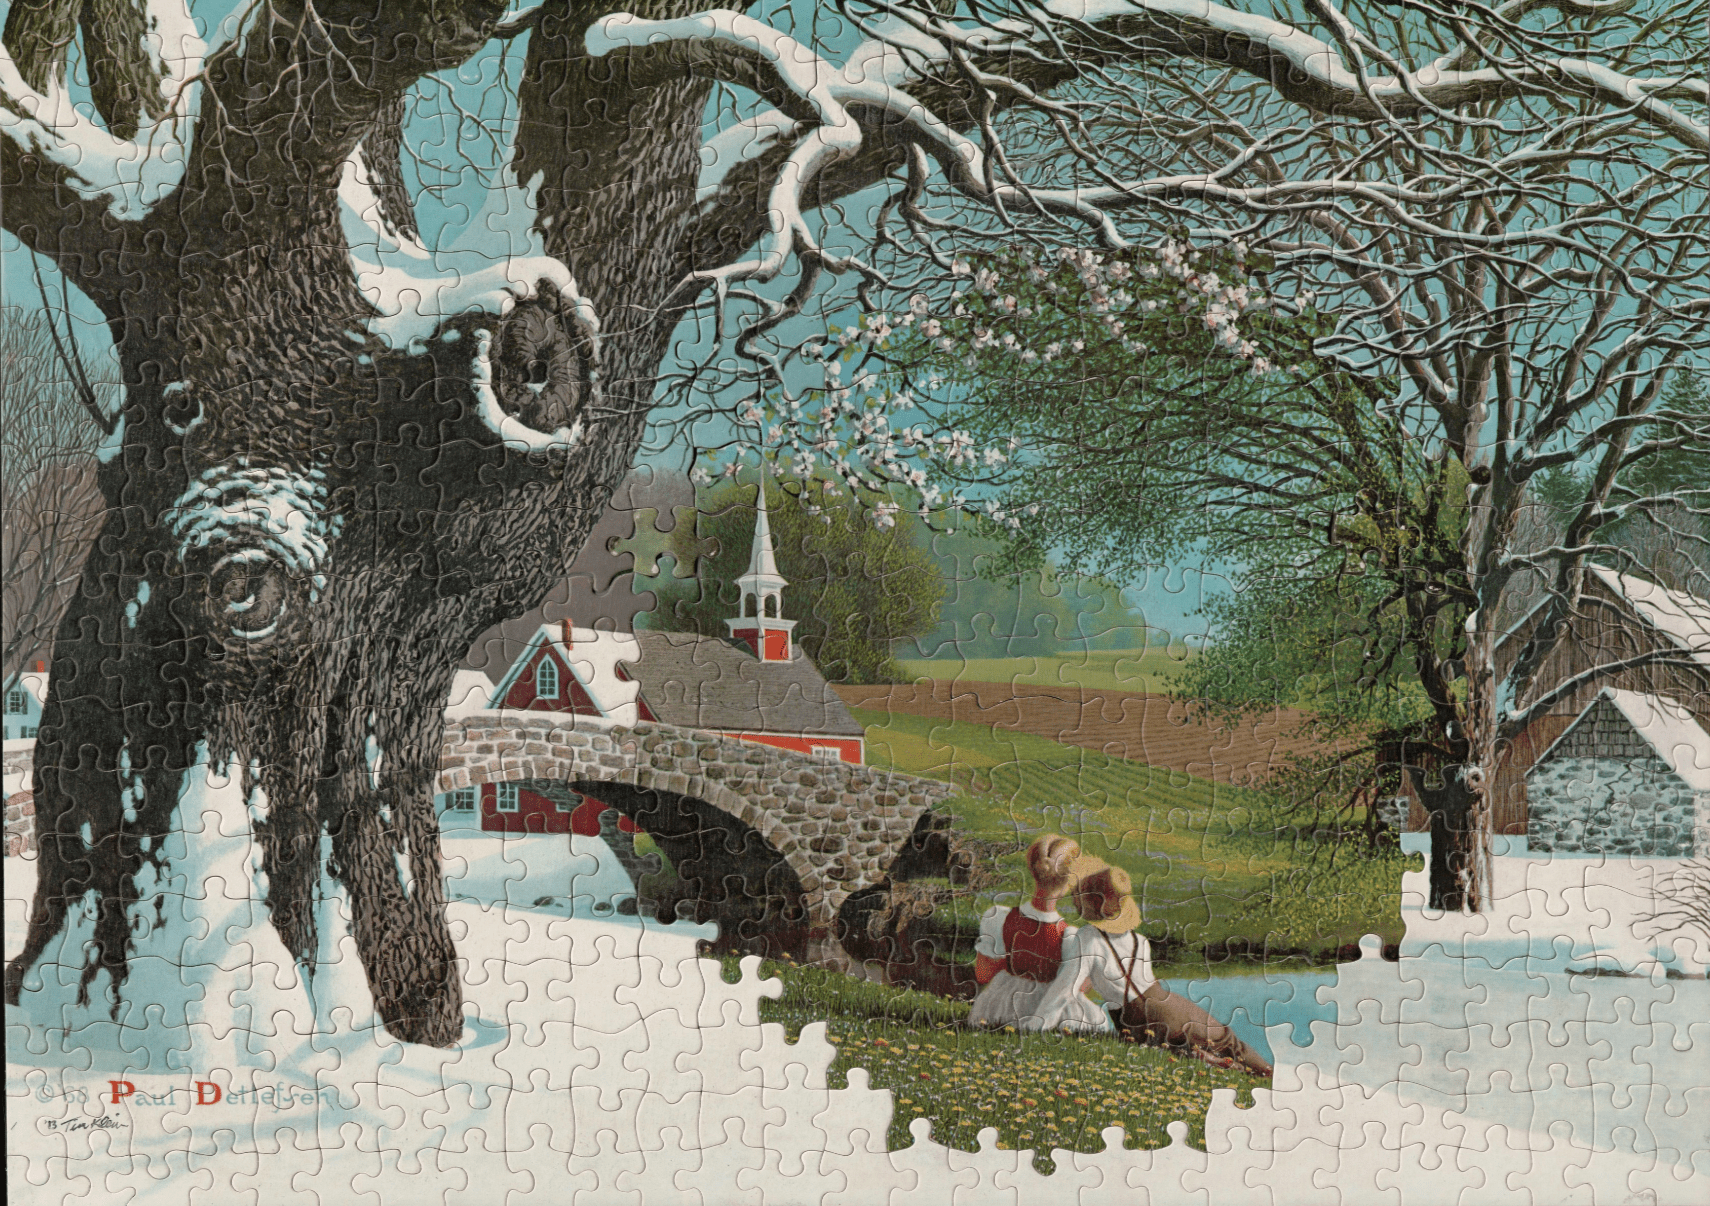 This artist uses jigsaw puzzles, with the same die cut